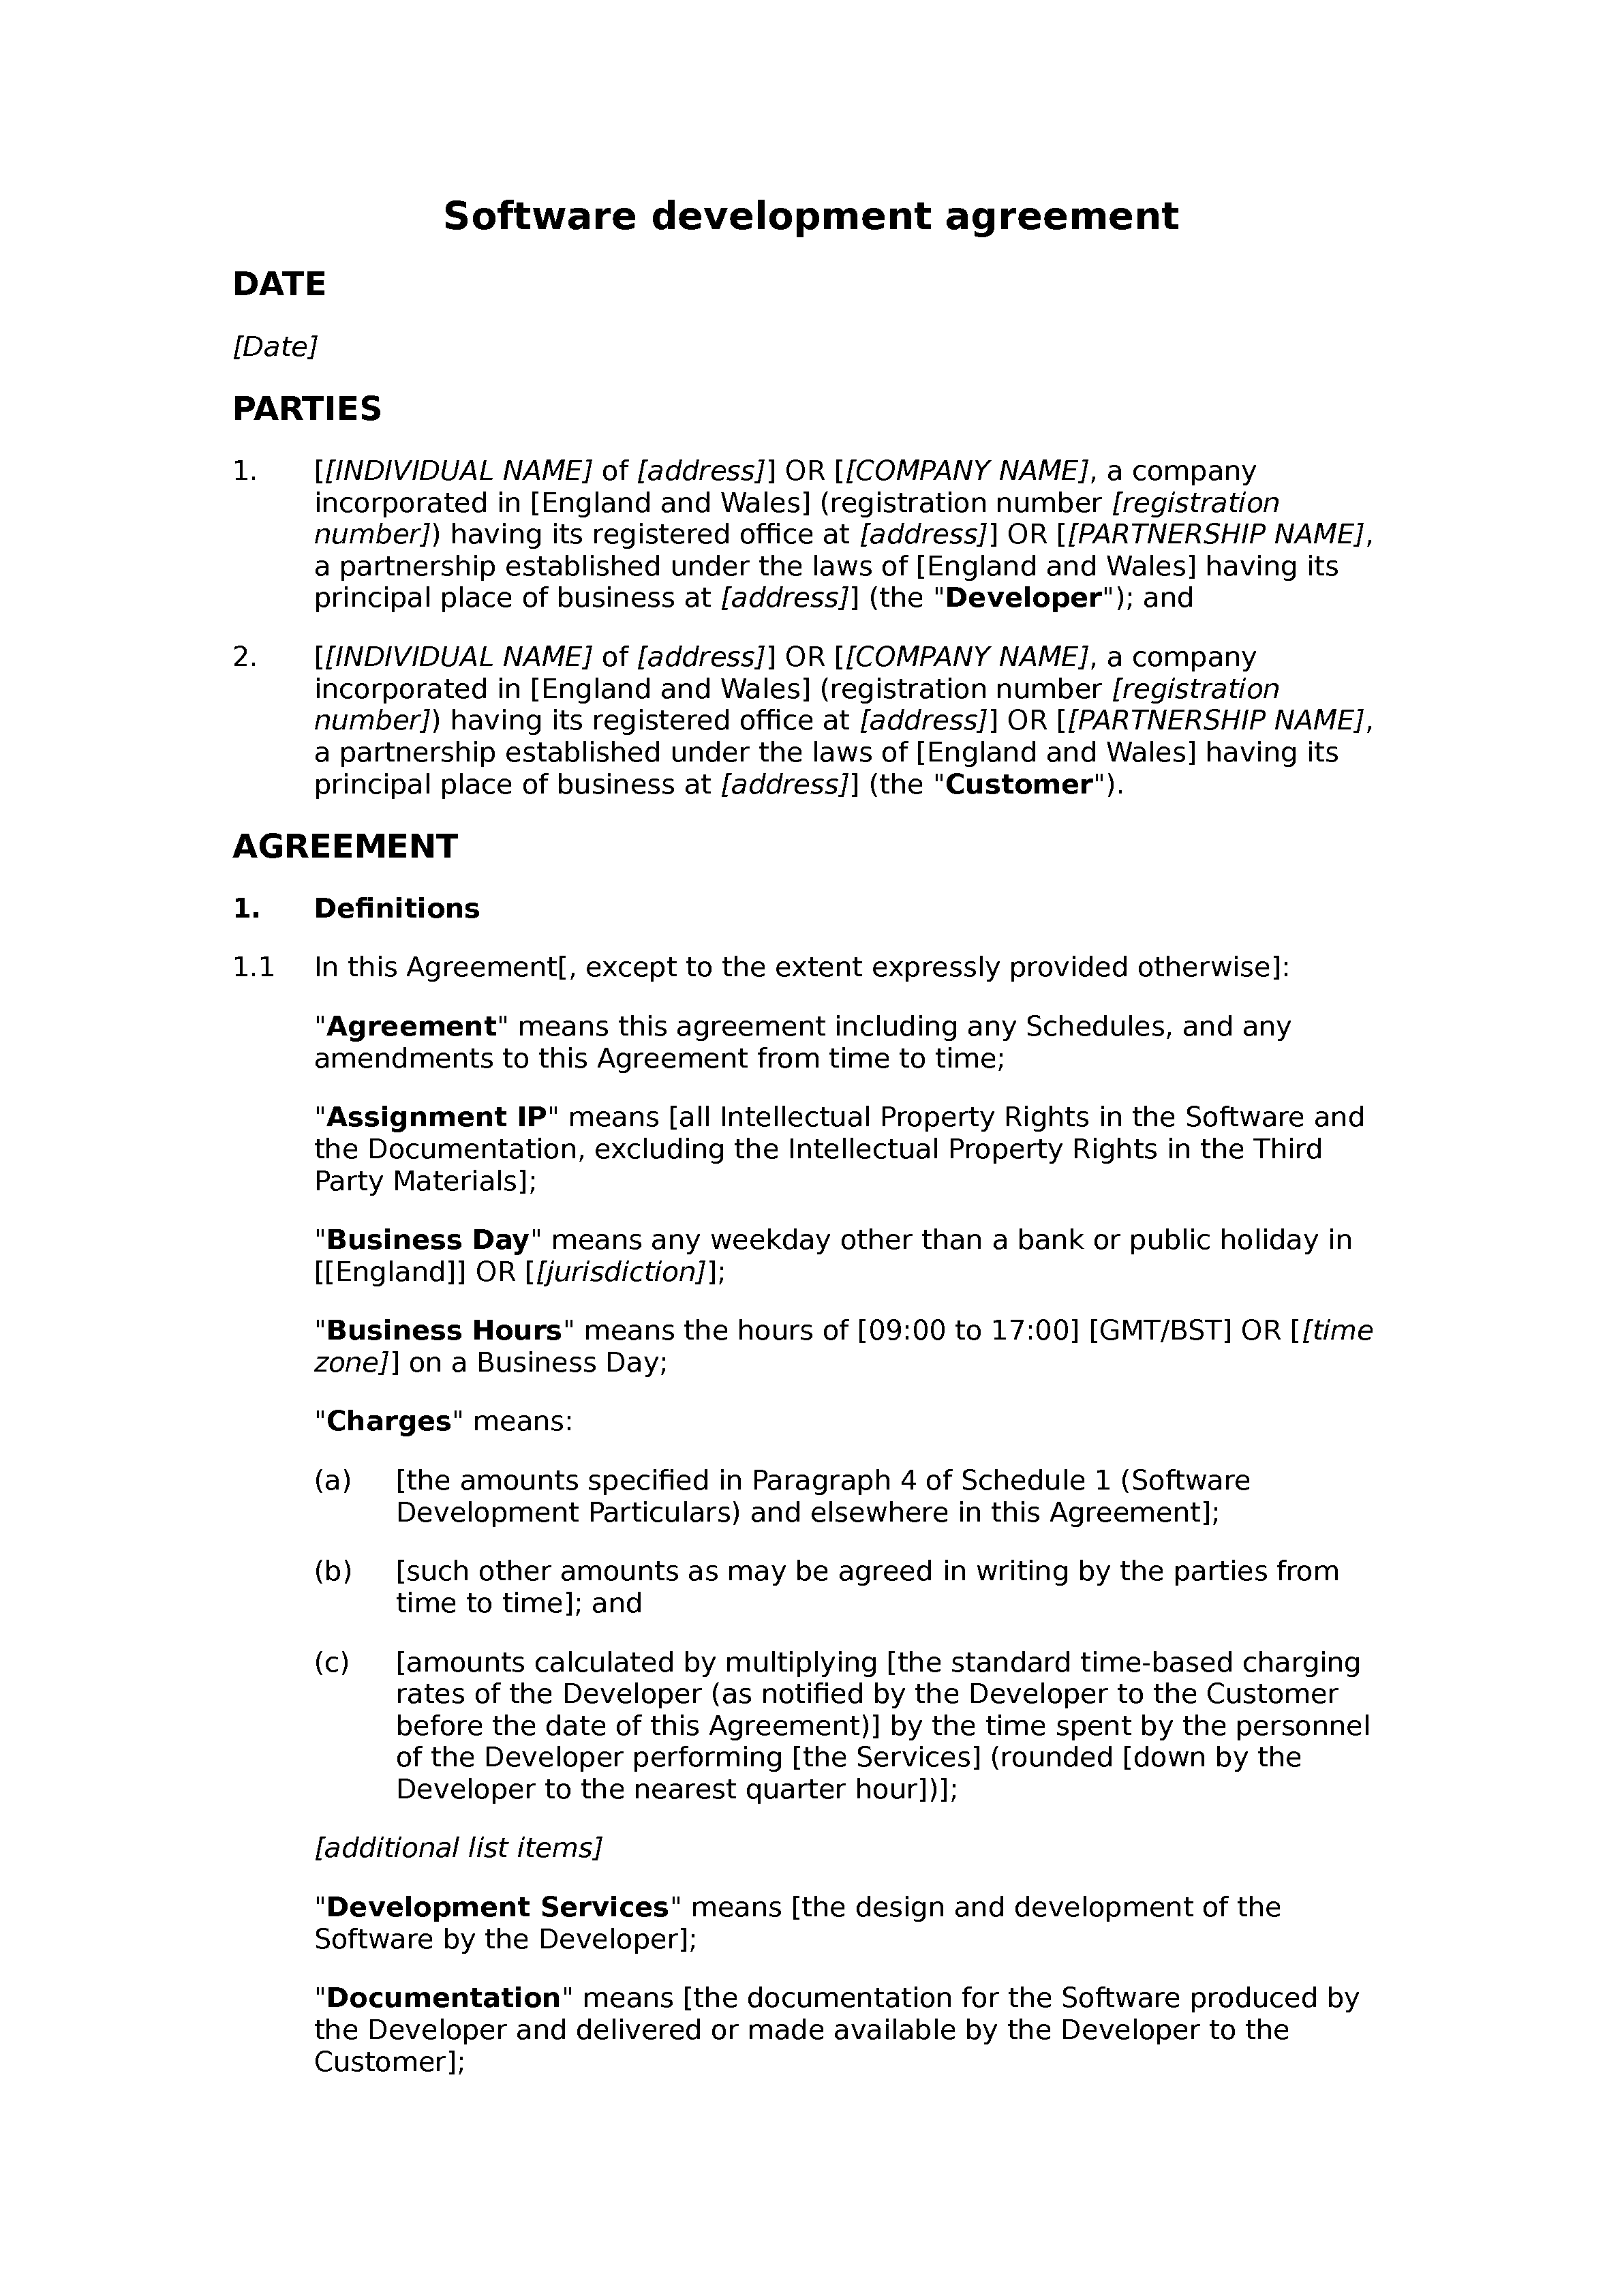 Software development agreement (basic) document preview